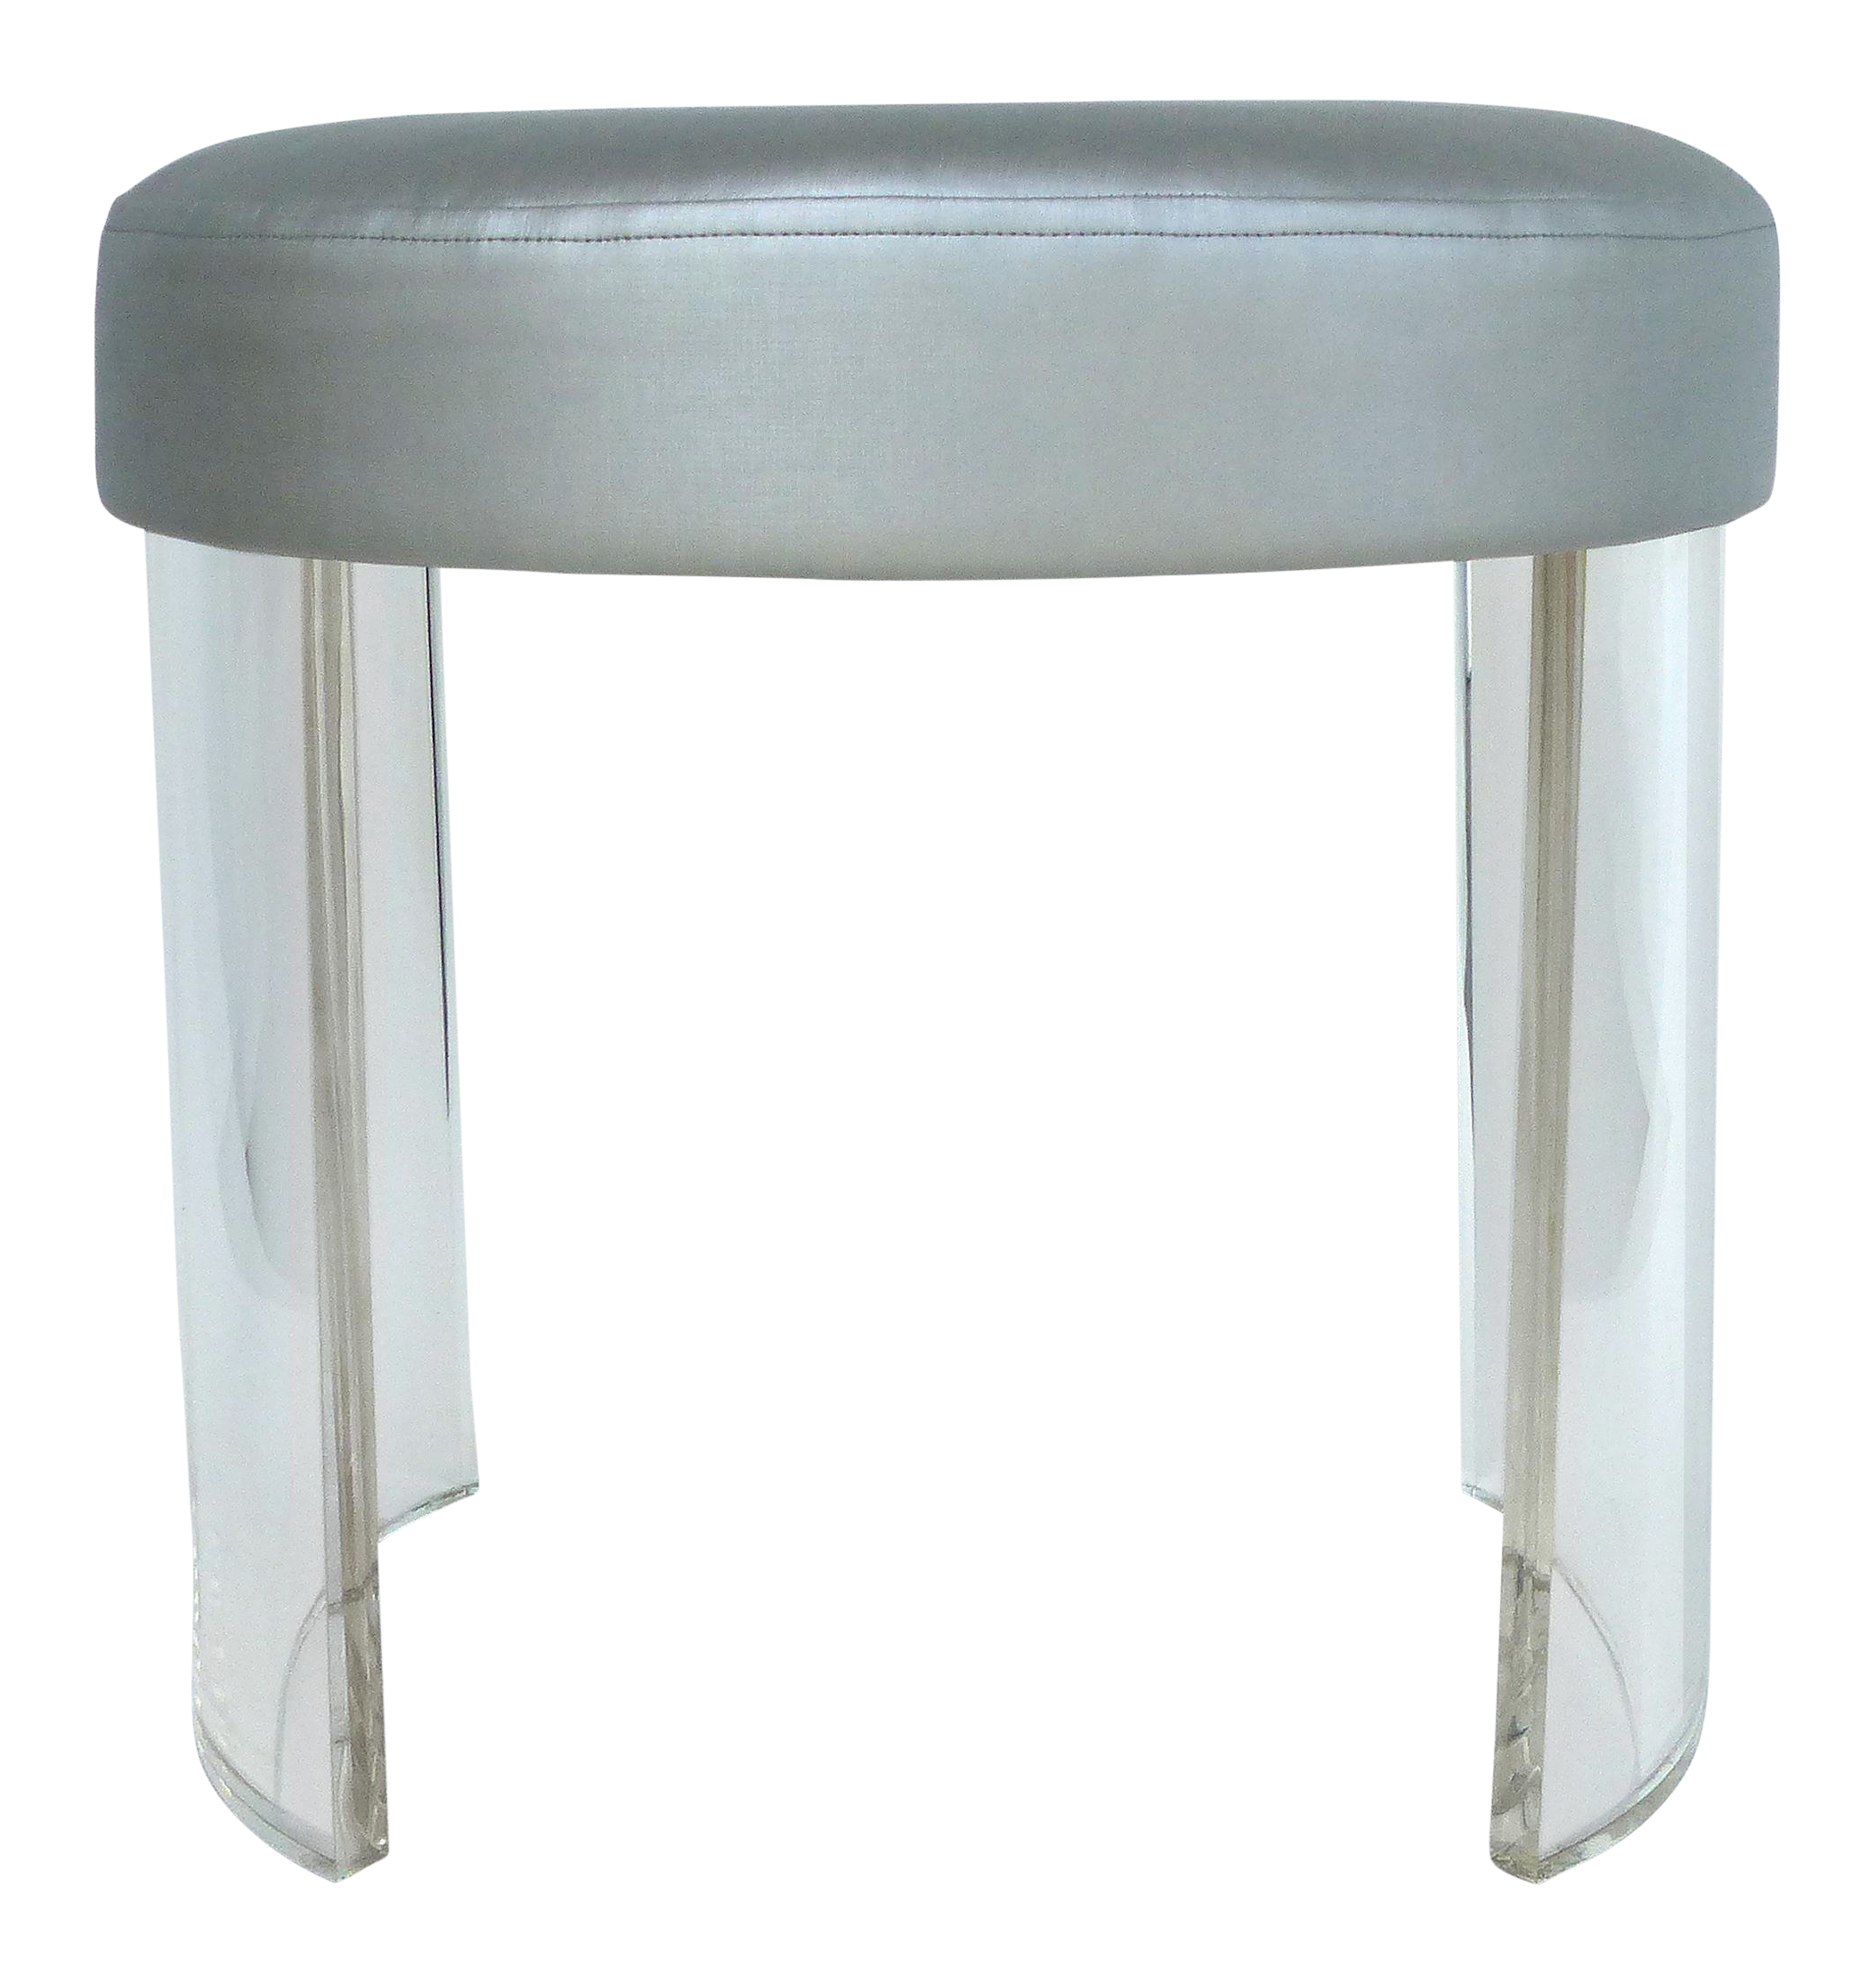 Pleasing Oval Lucite Vanity Stool With A Silver Metallic Upholstered Dailytribune Chair Design For Home Dailytribuneorg